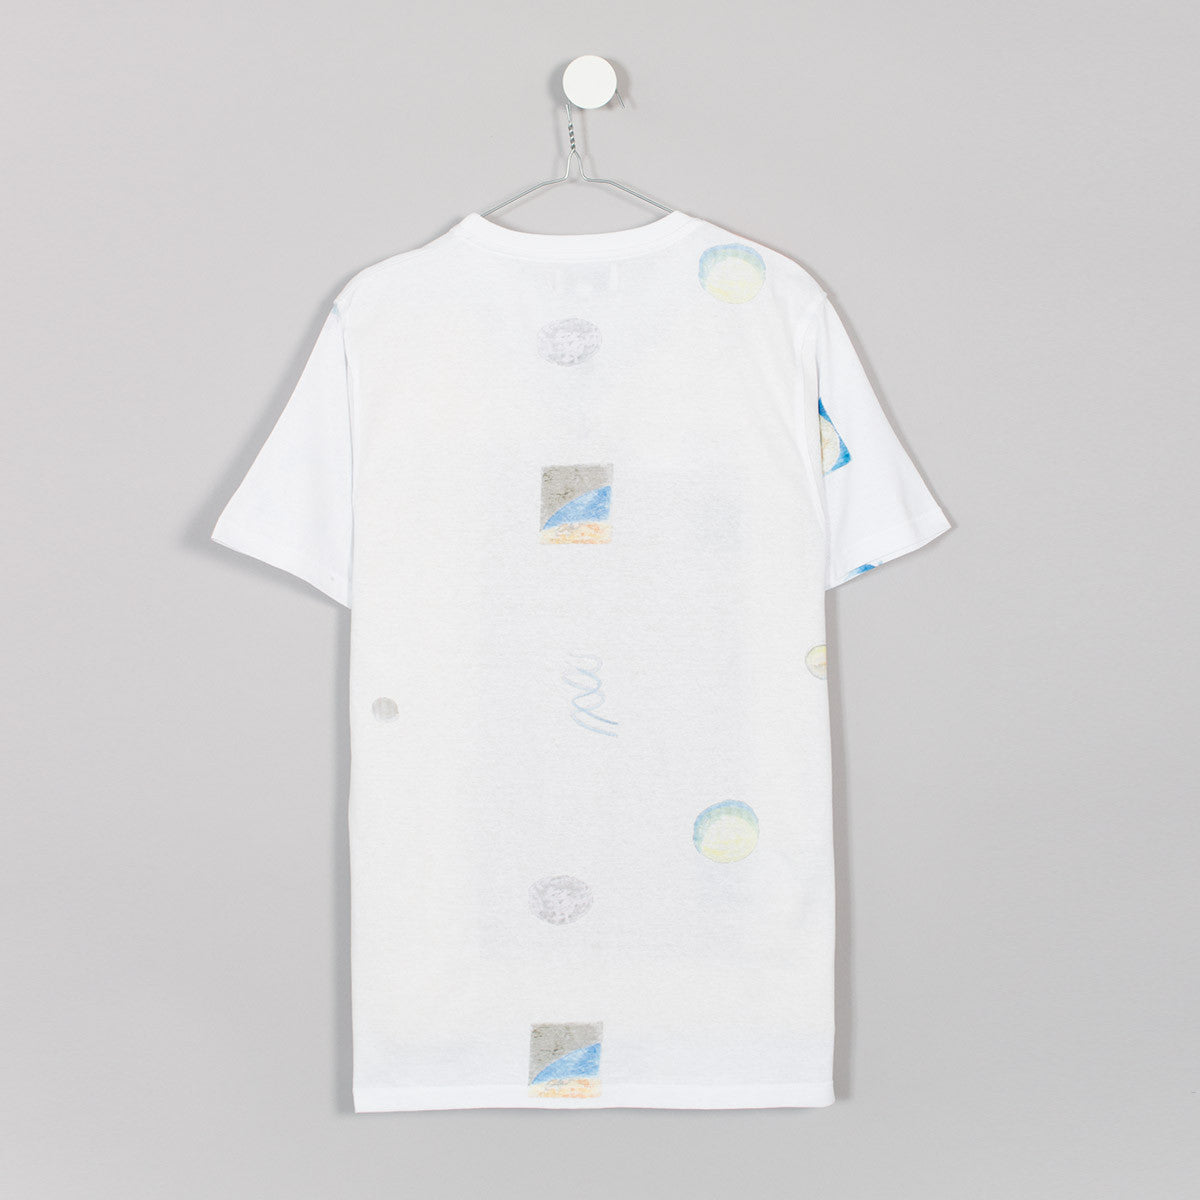 Soulland Pluto T-Shirt - White  - CARTOCON